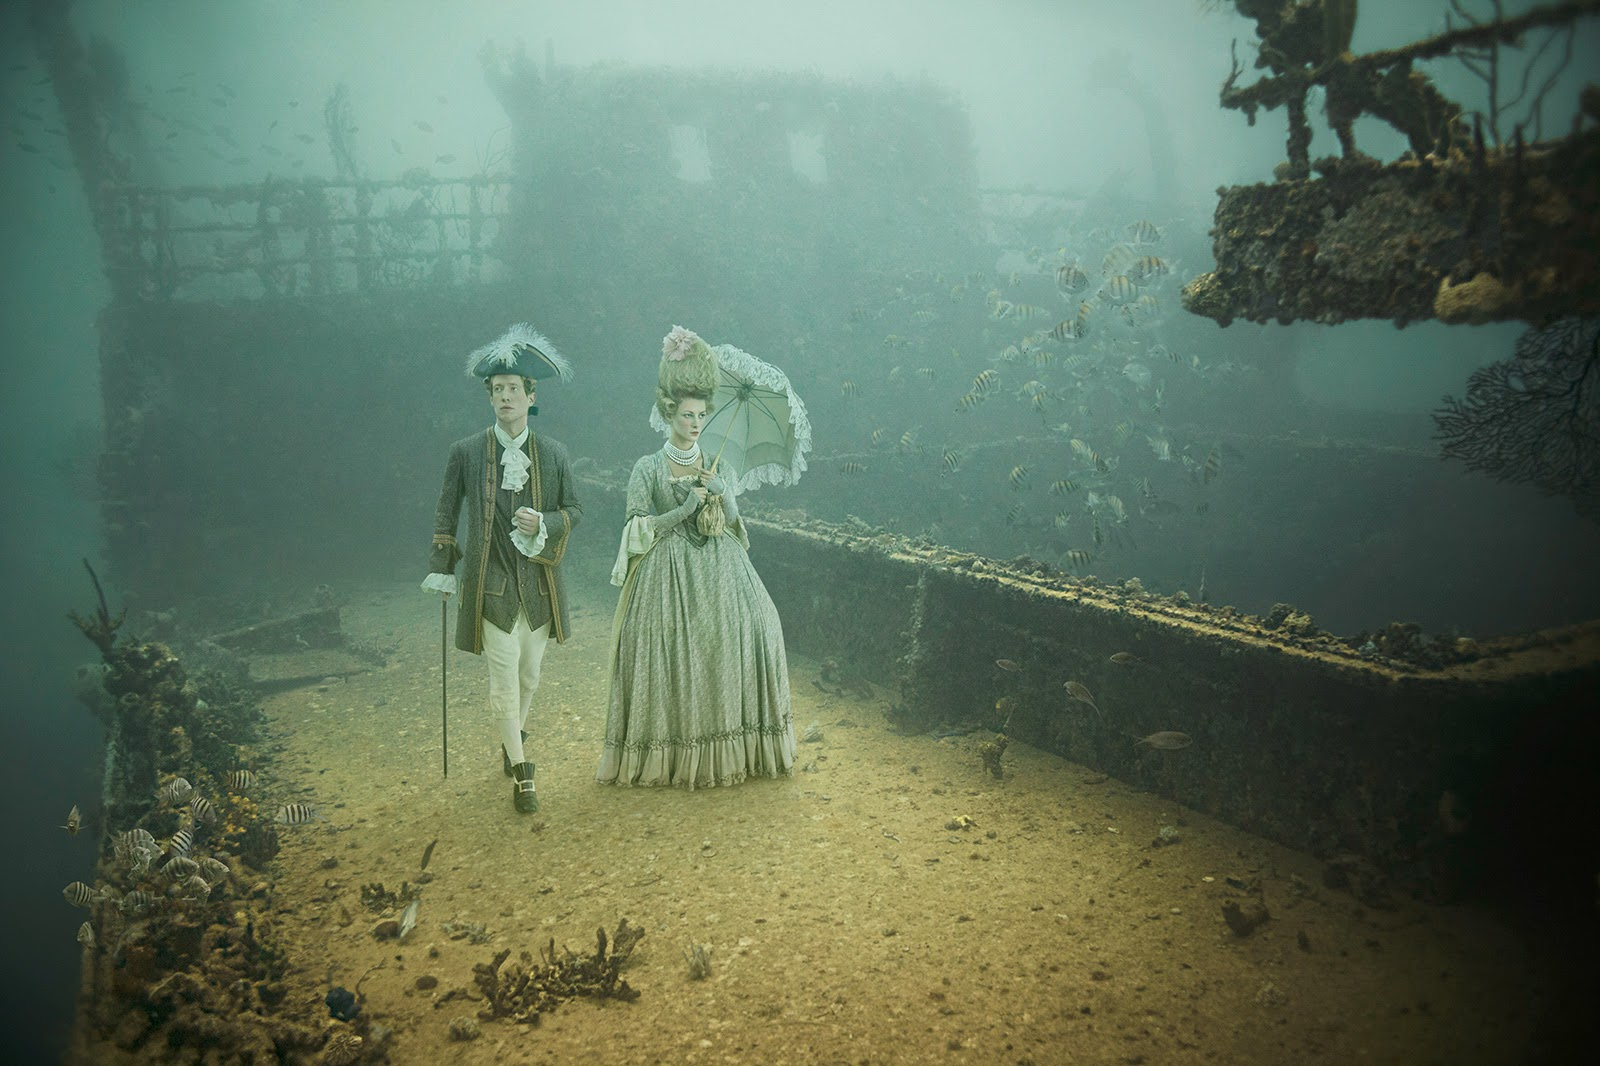 07-Andreas-Franke-Surreal-Artificial-Reef-Photography-www-designstack-co